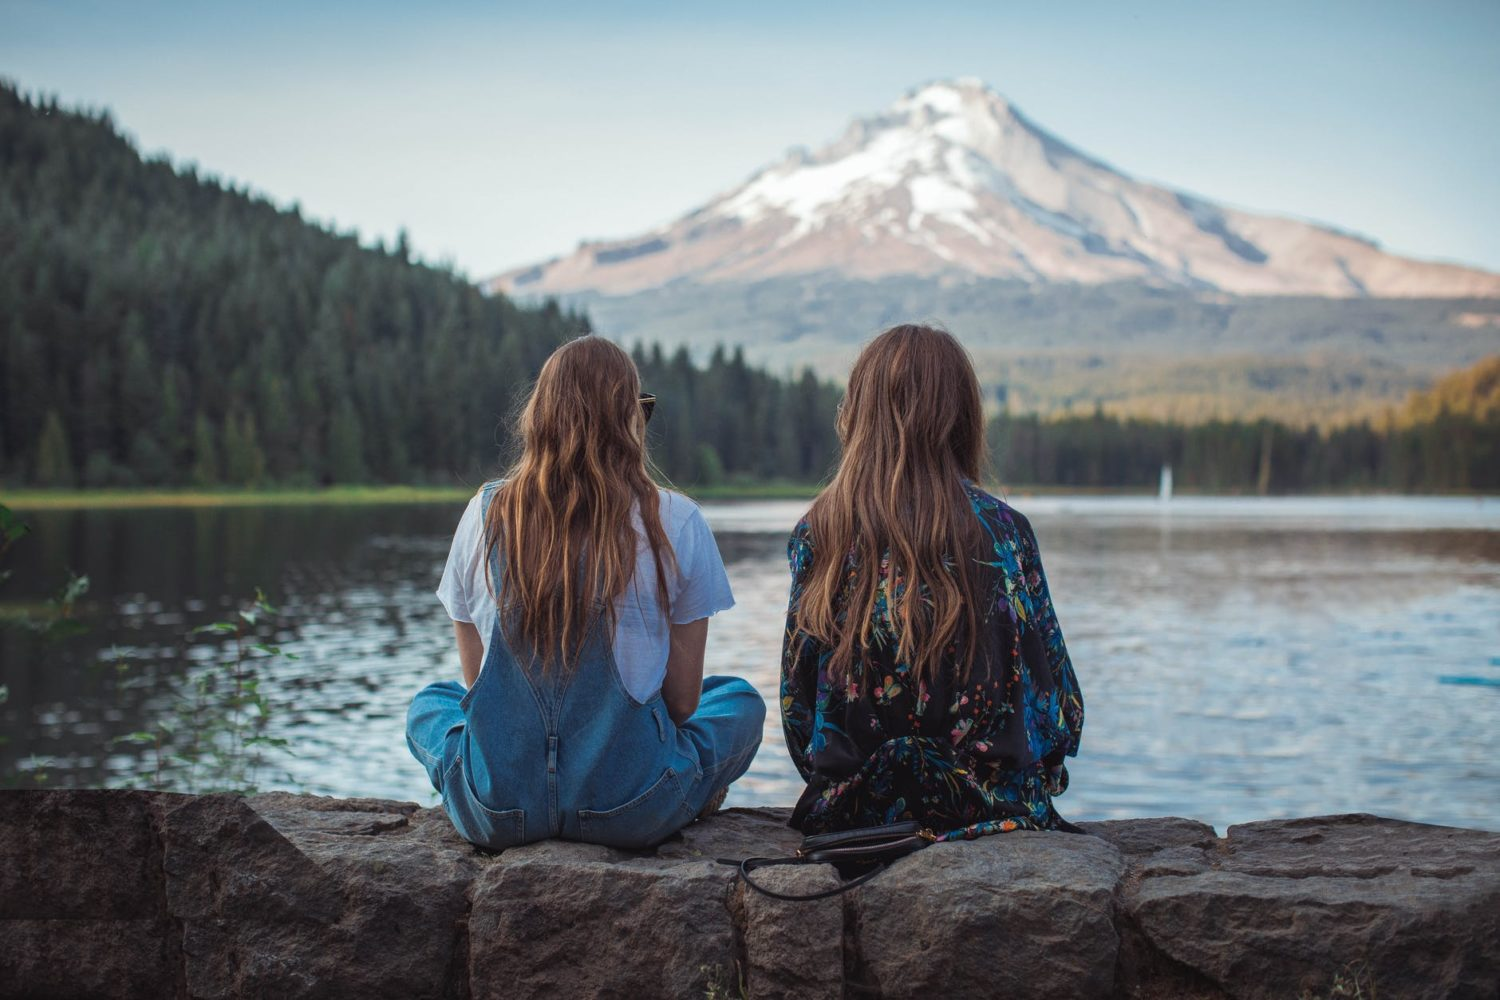 Two girls sitting on a ledge looking out towards the mountains